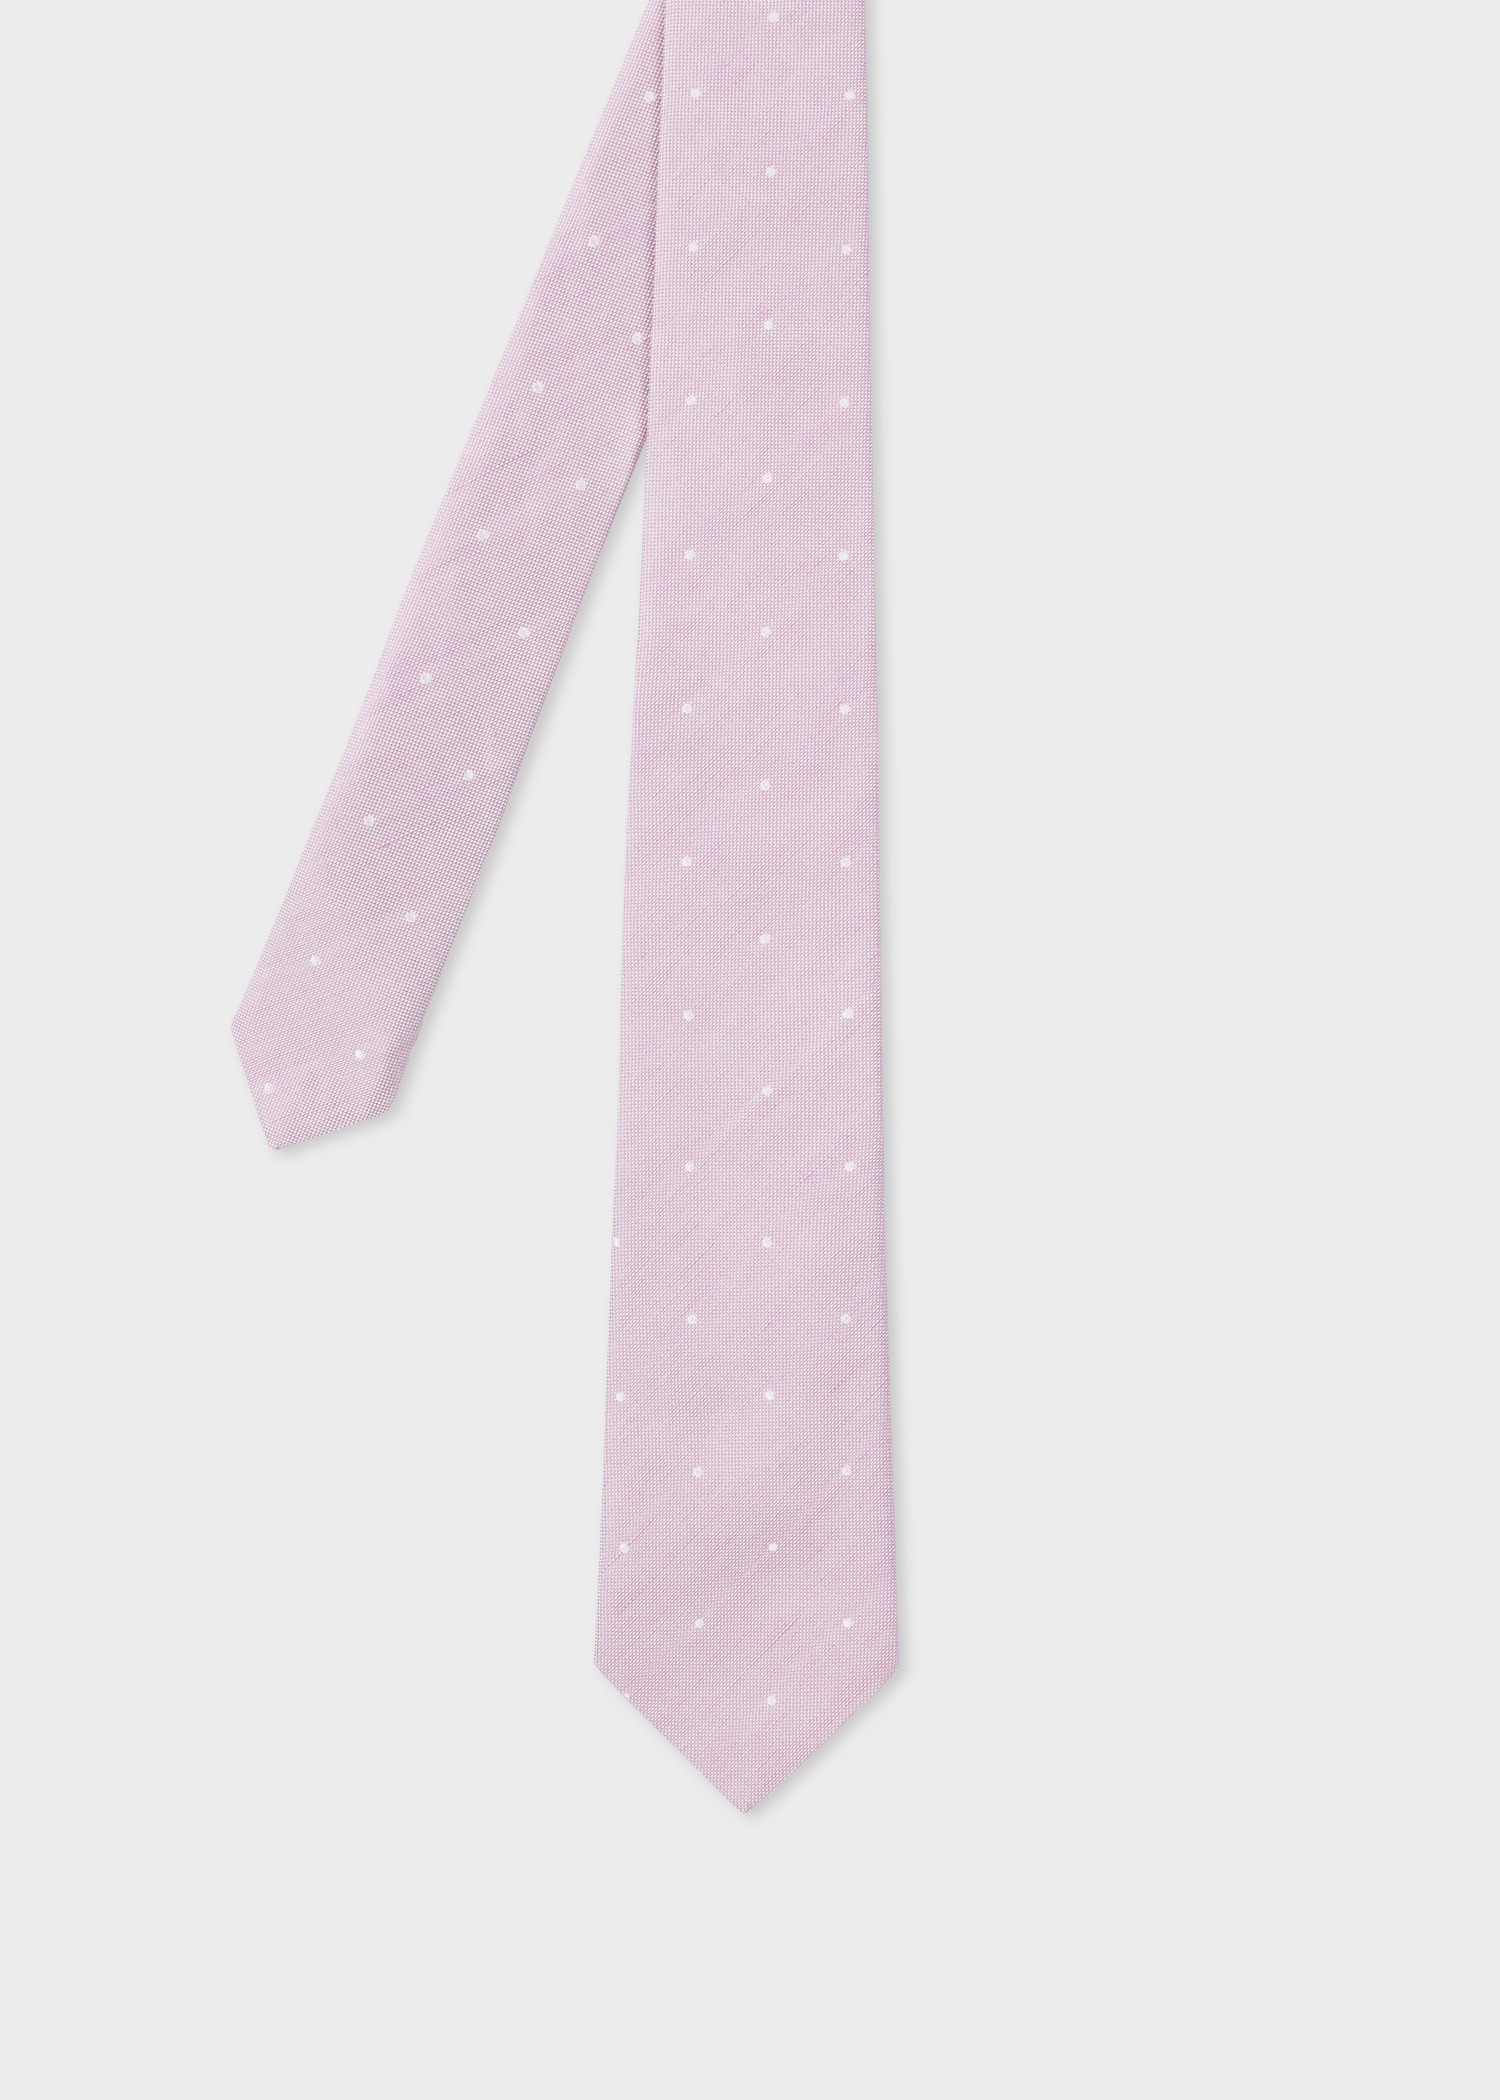 099cf43c8501 Front View - Men's Light Pink Polka Dot Narrow Silk And Linen Tie Paul Smith